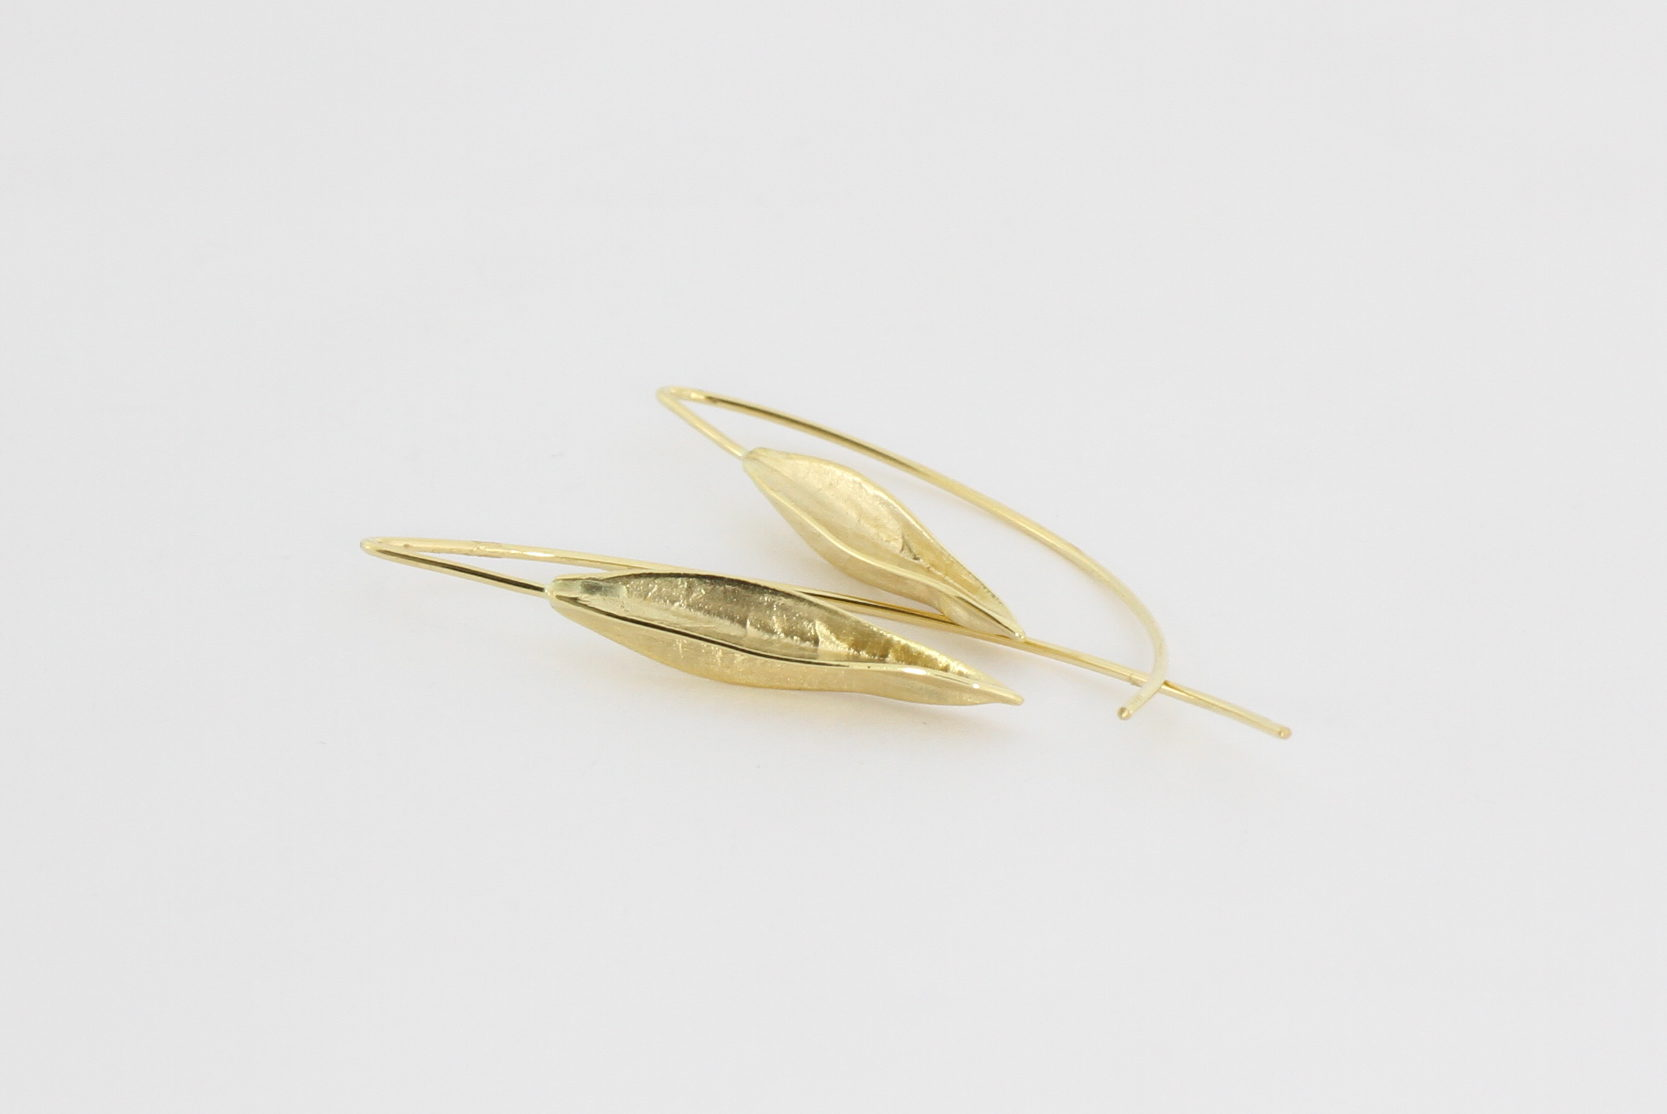 Payet seed pod earrings